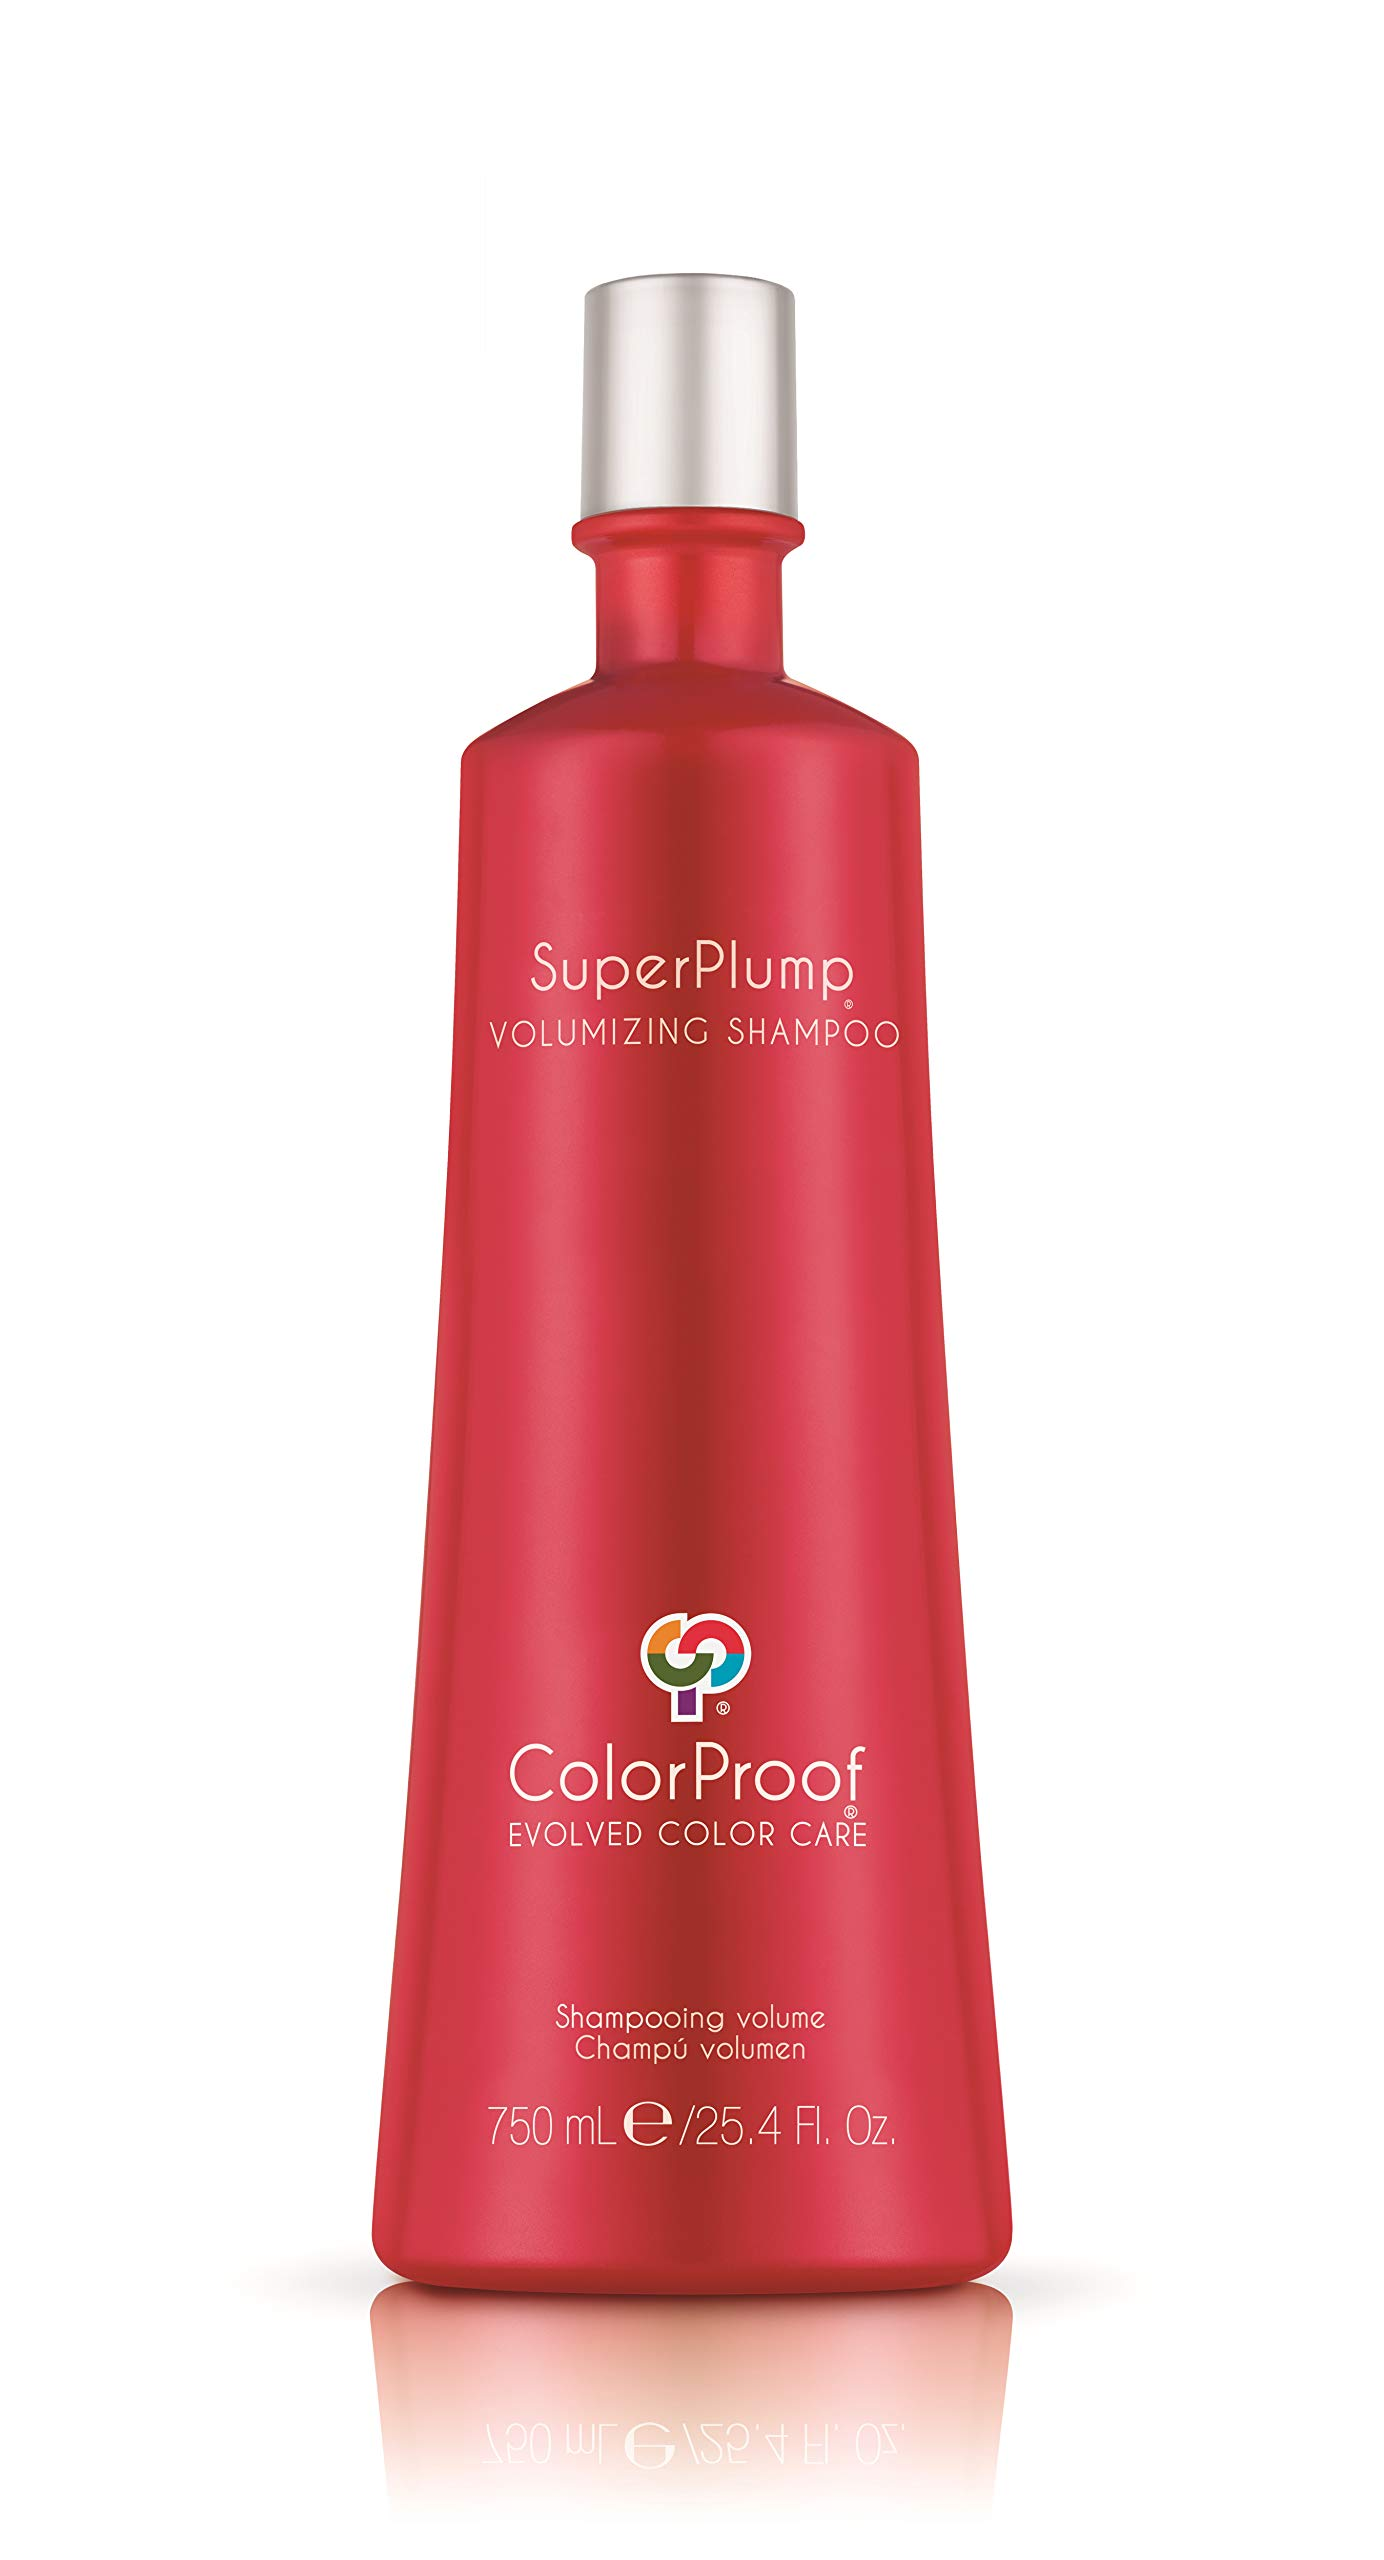 ColorProof SuperPlump Volumizing Shampoo for Color-Treated Hair by ColorProof Evolved Color Care